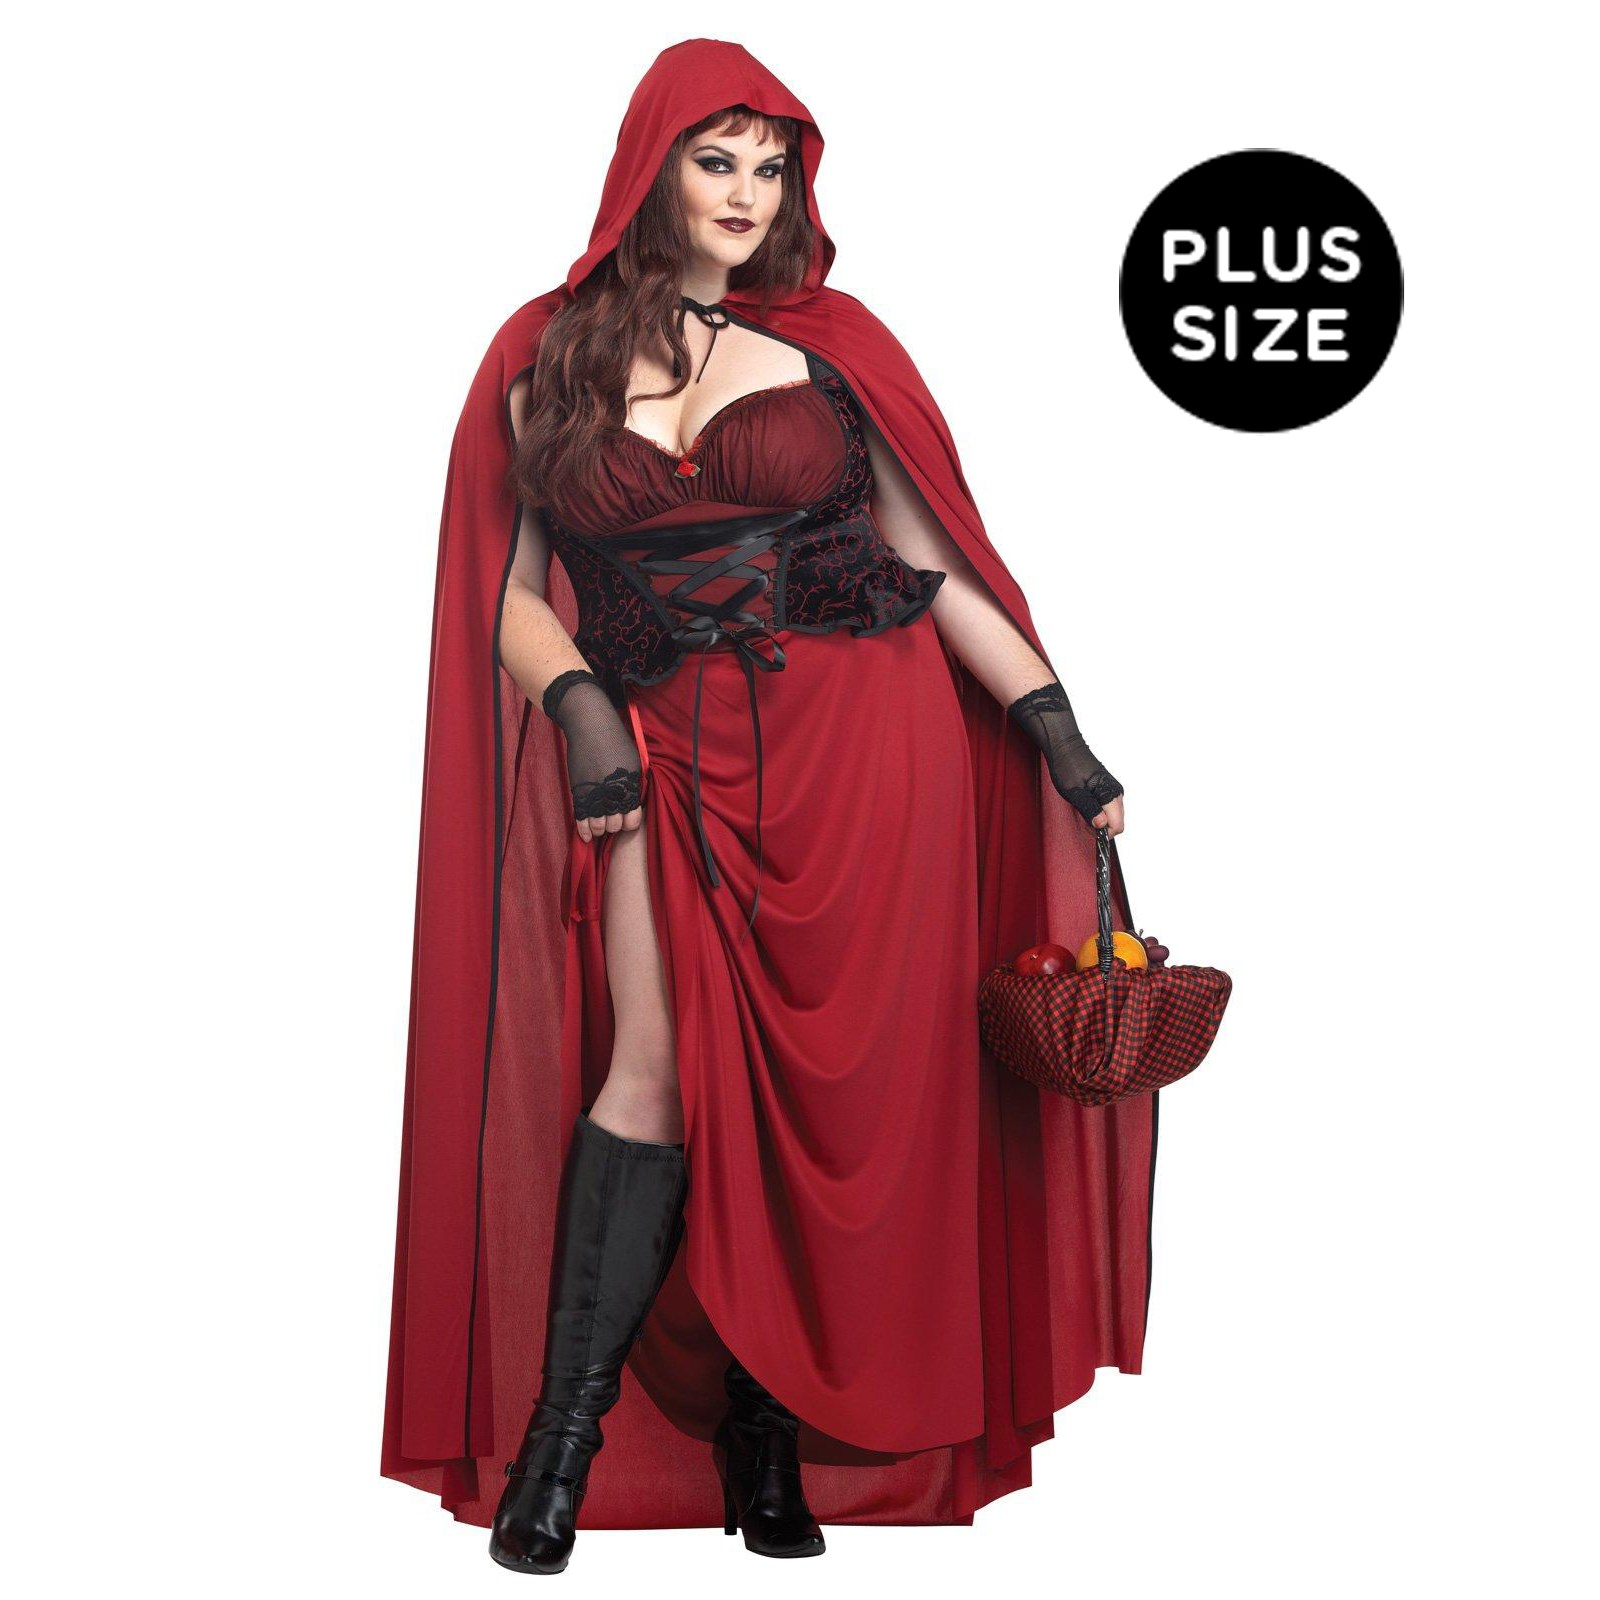 Dark Red Riding Hood Plus Size Costume | BuyCostumes.com